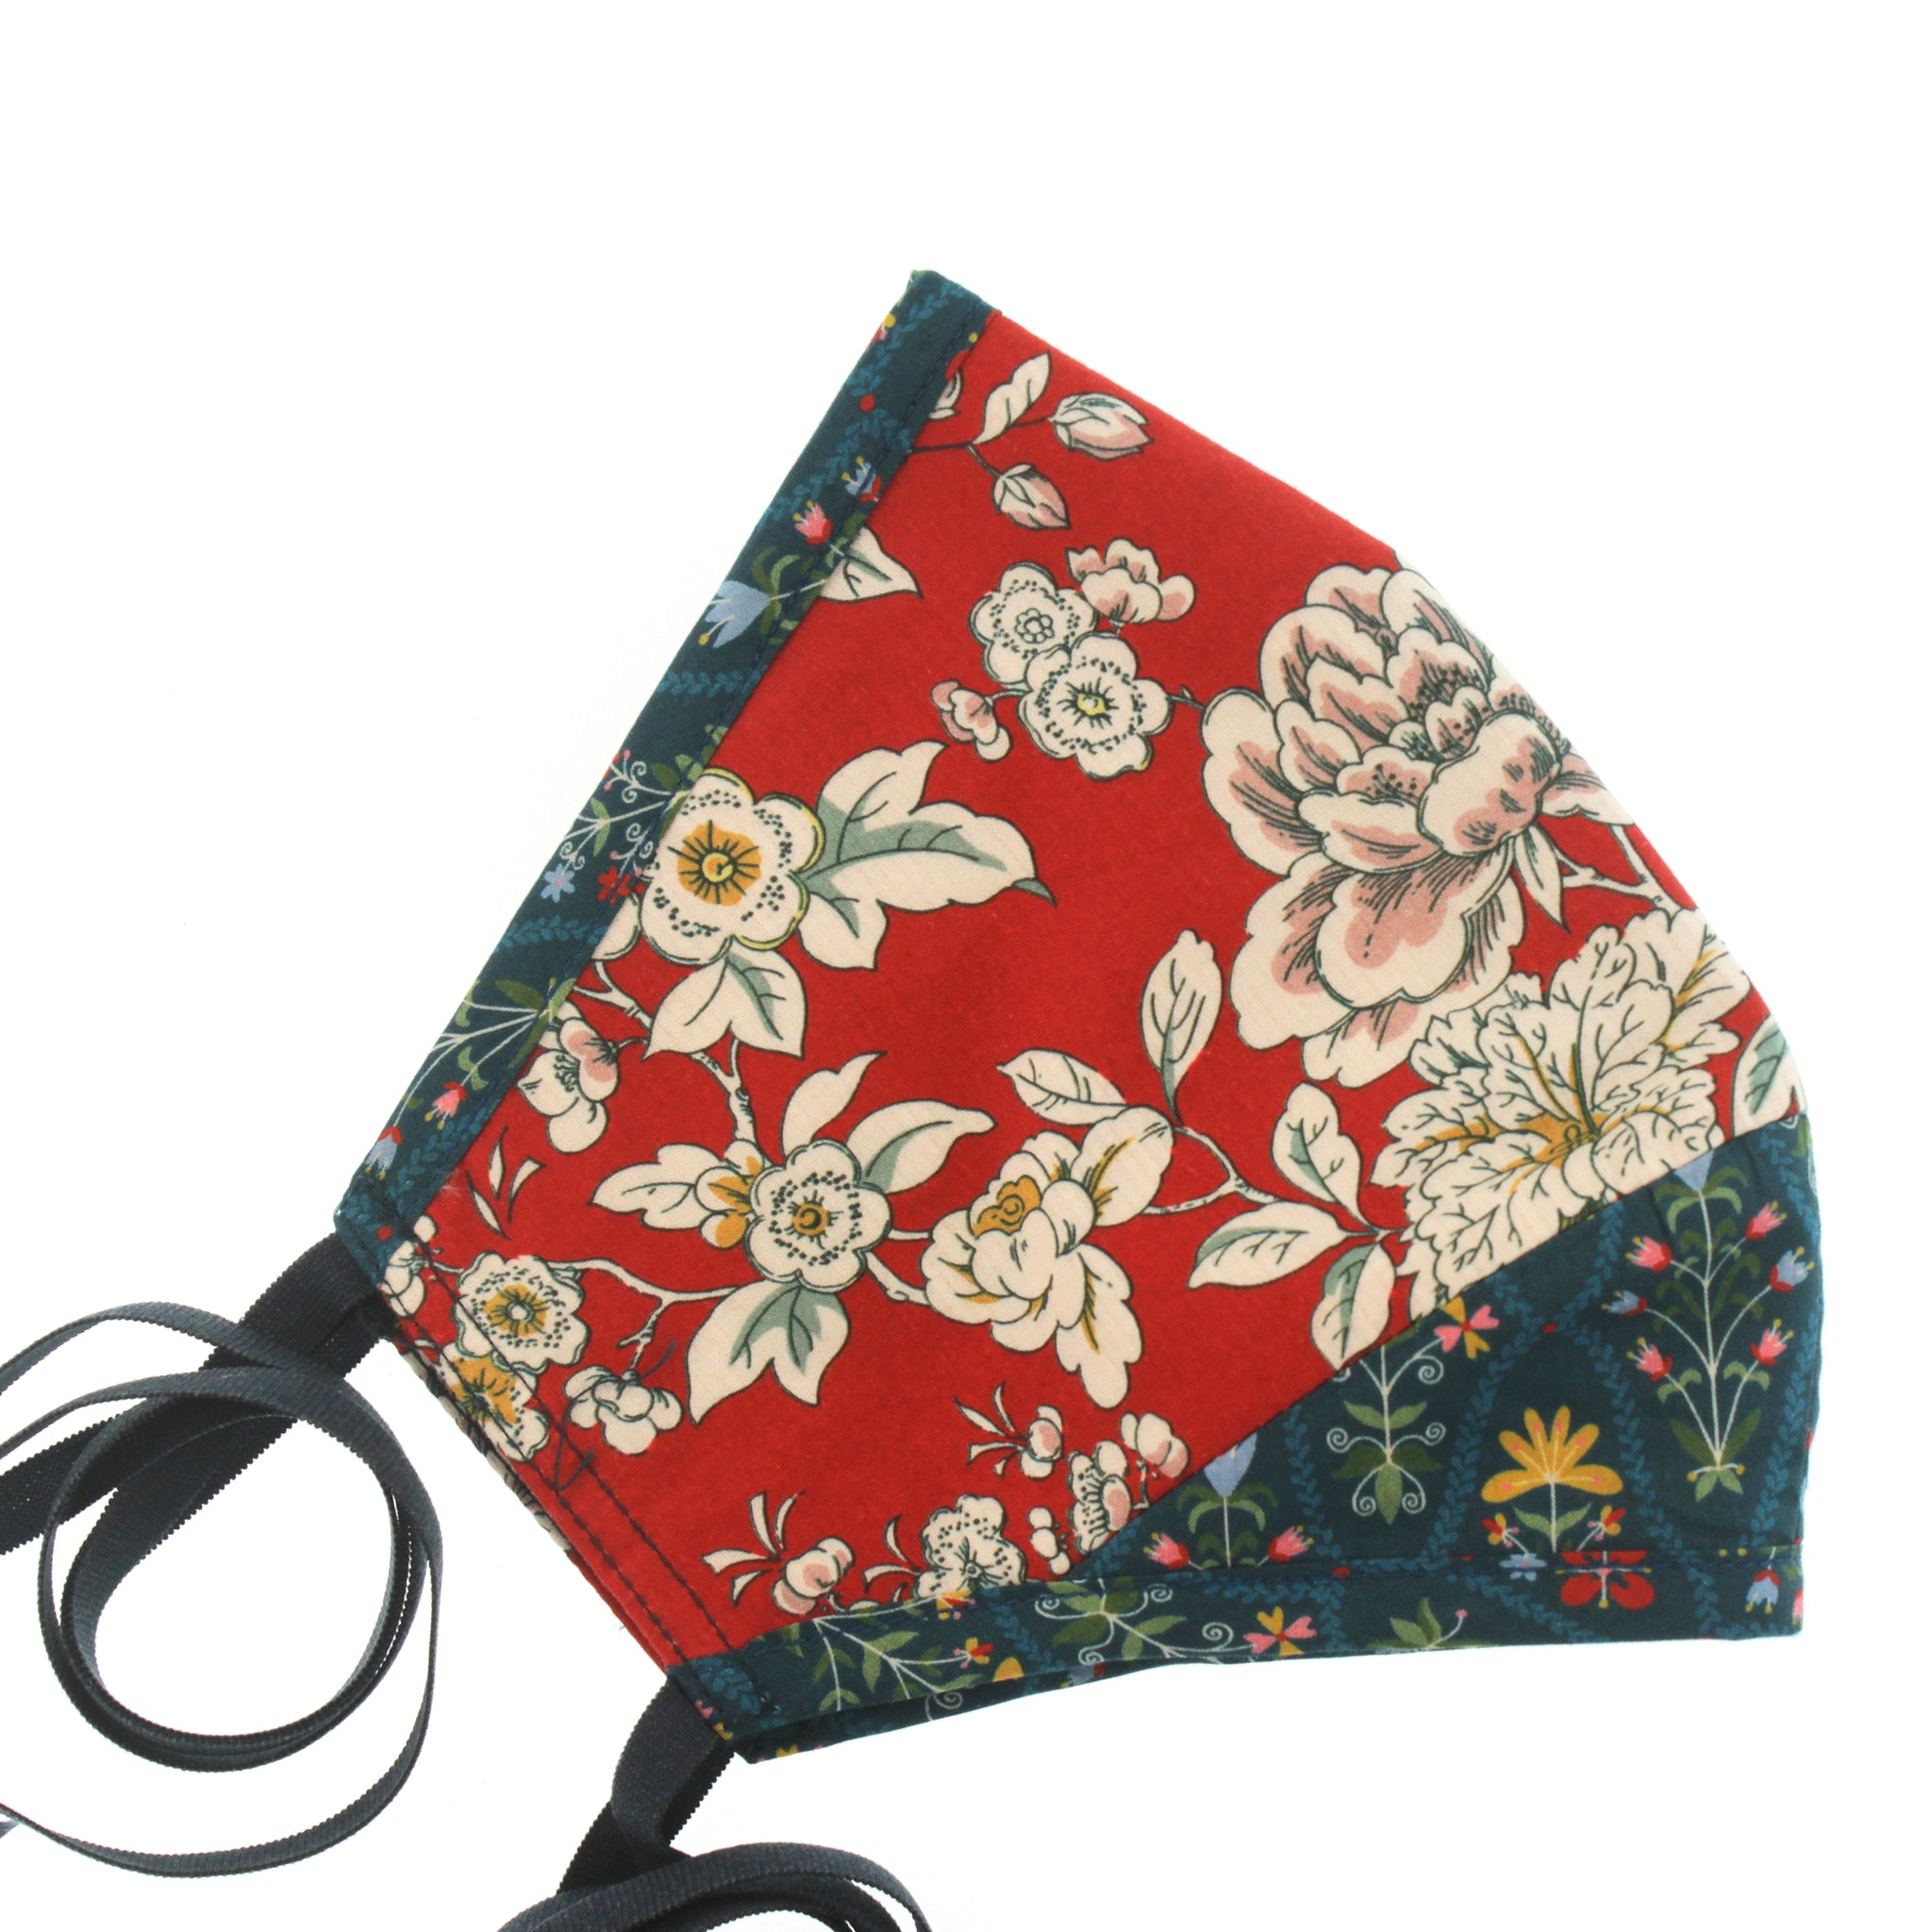 A Liberty Print Face Mask in Red + Teal Floral Cotton